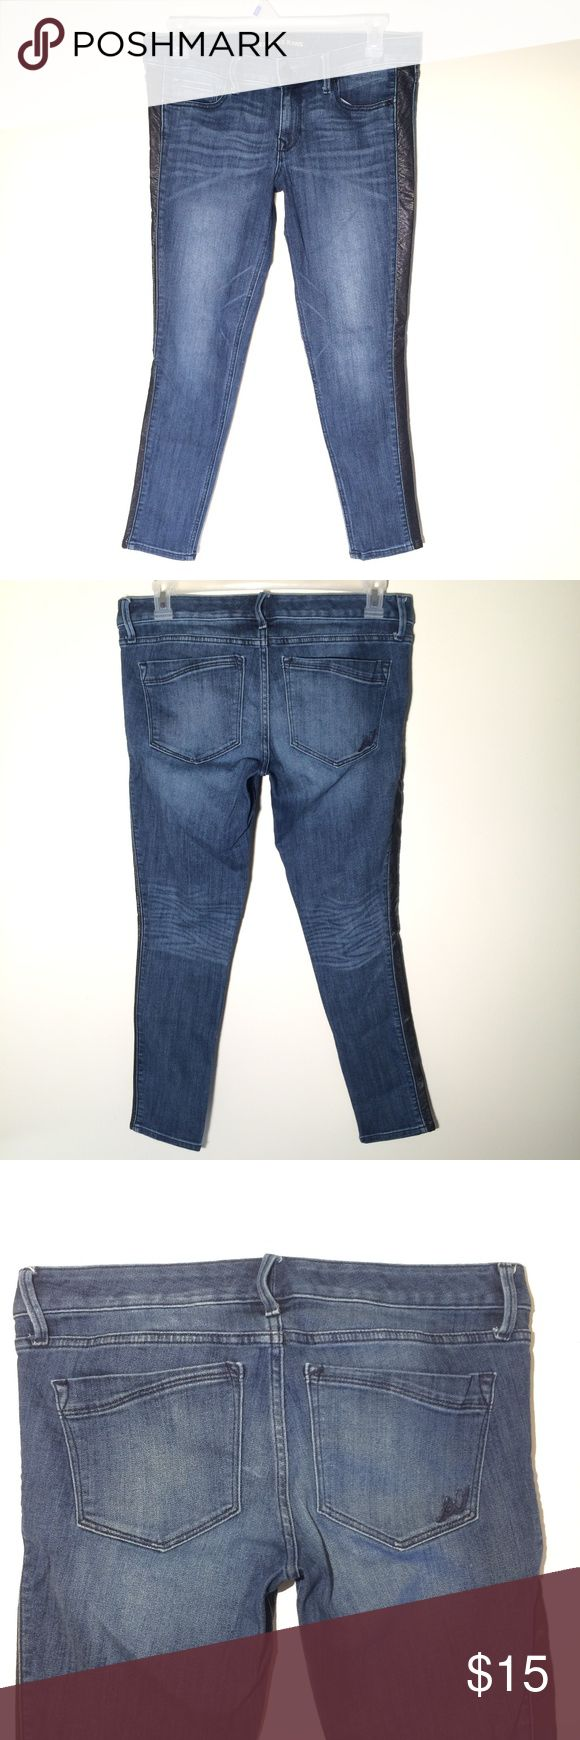 """EXPRESS STELLA ANKLE LEGGING STRETCH JEANS 10 EXPRESS BRAND LOW RISE ANKLE LEGGING STRETCH JEANS. Ladies Stella size on tag is 10R. Faux leather insert down each leg. Excellent condition with no rips stains or tears. 75% cotton 24% polyester and 1% spandex. Zip fly. Please check actual measurements below.   ACTUAL MEASUREMENTS  Waist 34"""" Inseam 28.5"""" Rise 9"""" Hips 36"""" Leg opening 10"""" Express Jeans Skinny"""